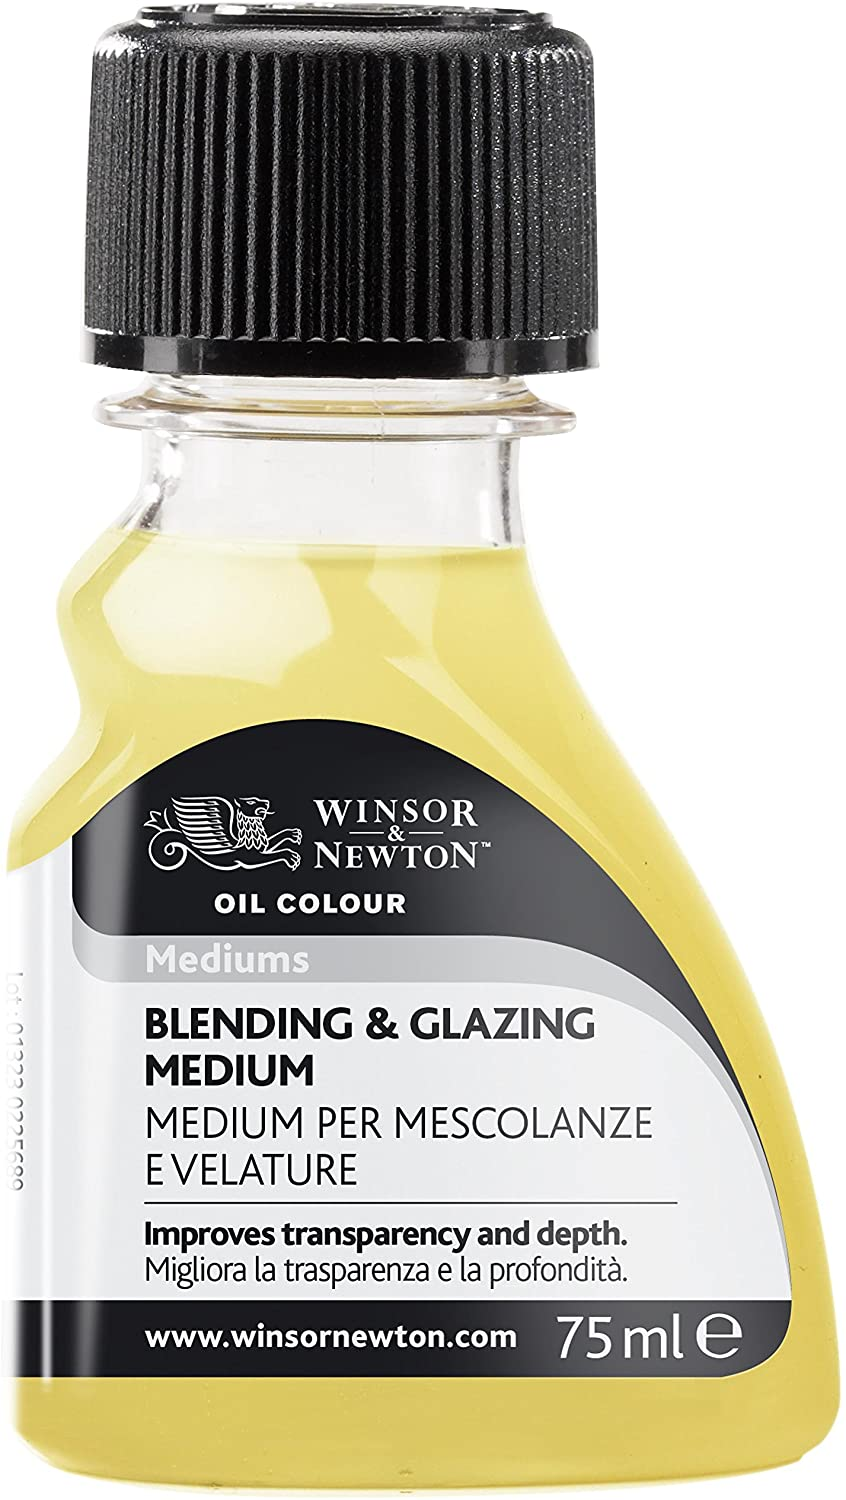 Winsor & Newton Blending & Glazing Medium, 75ml